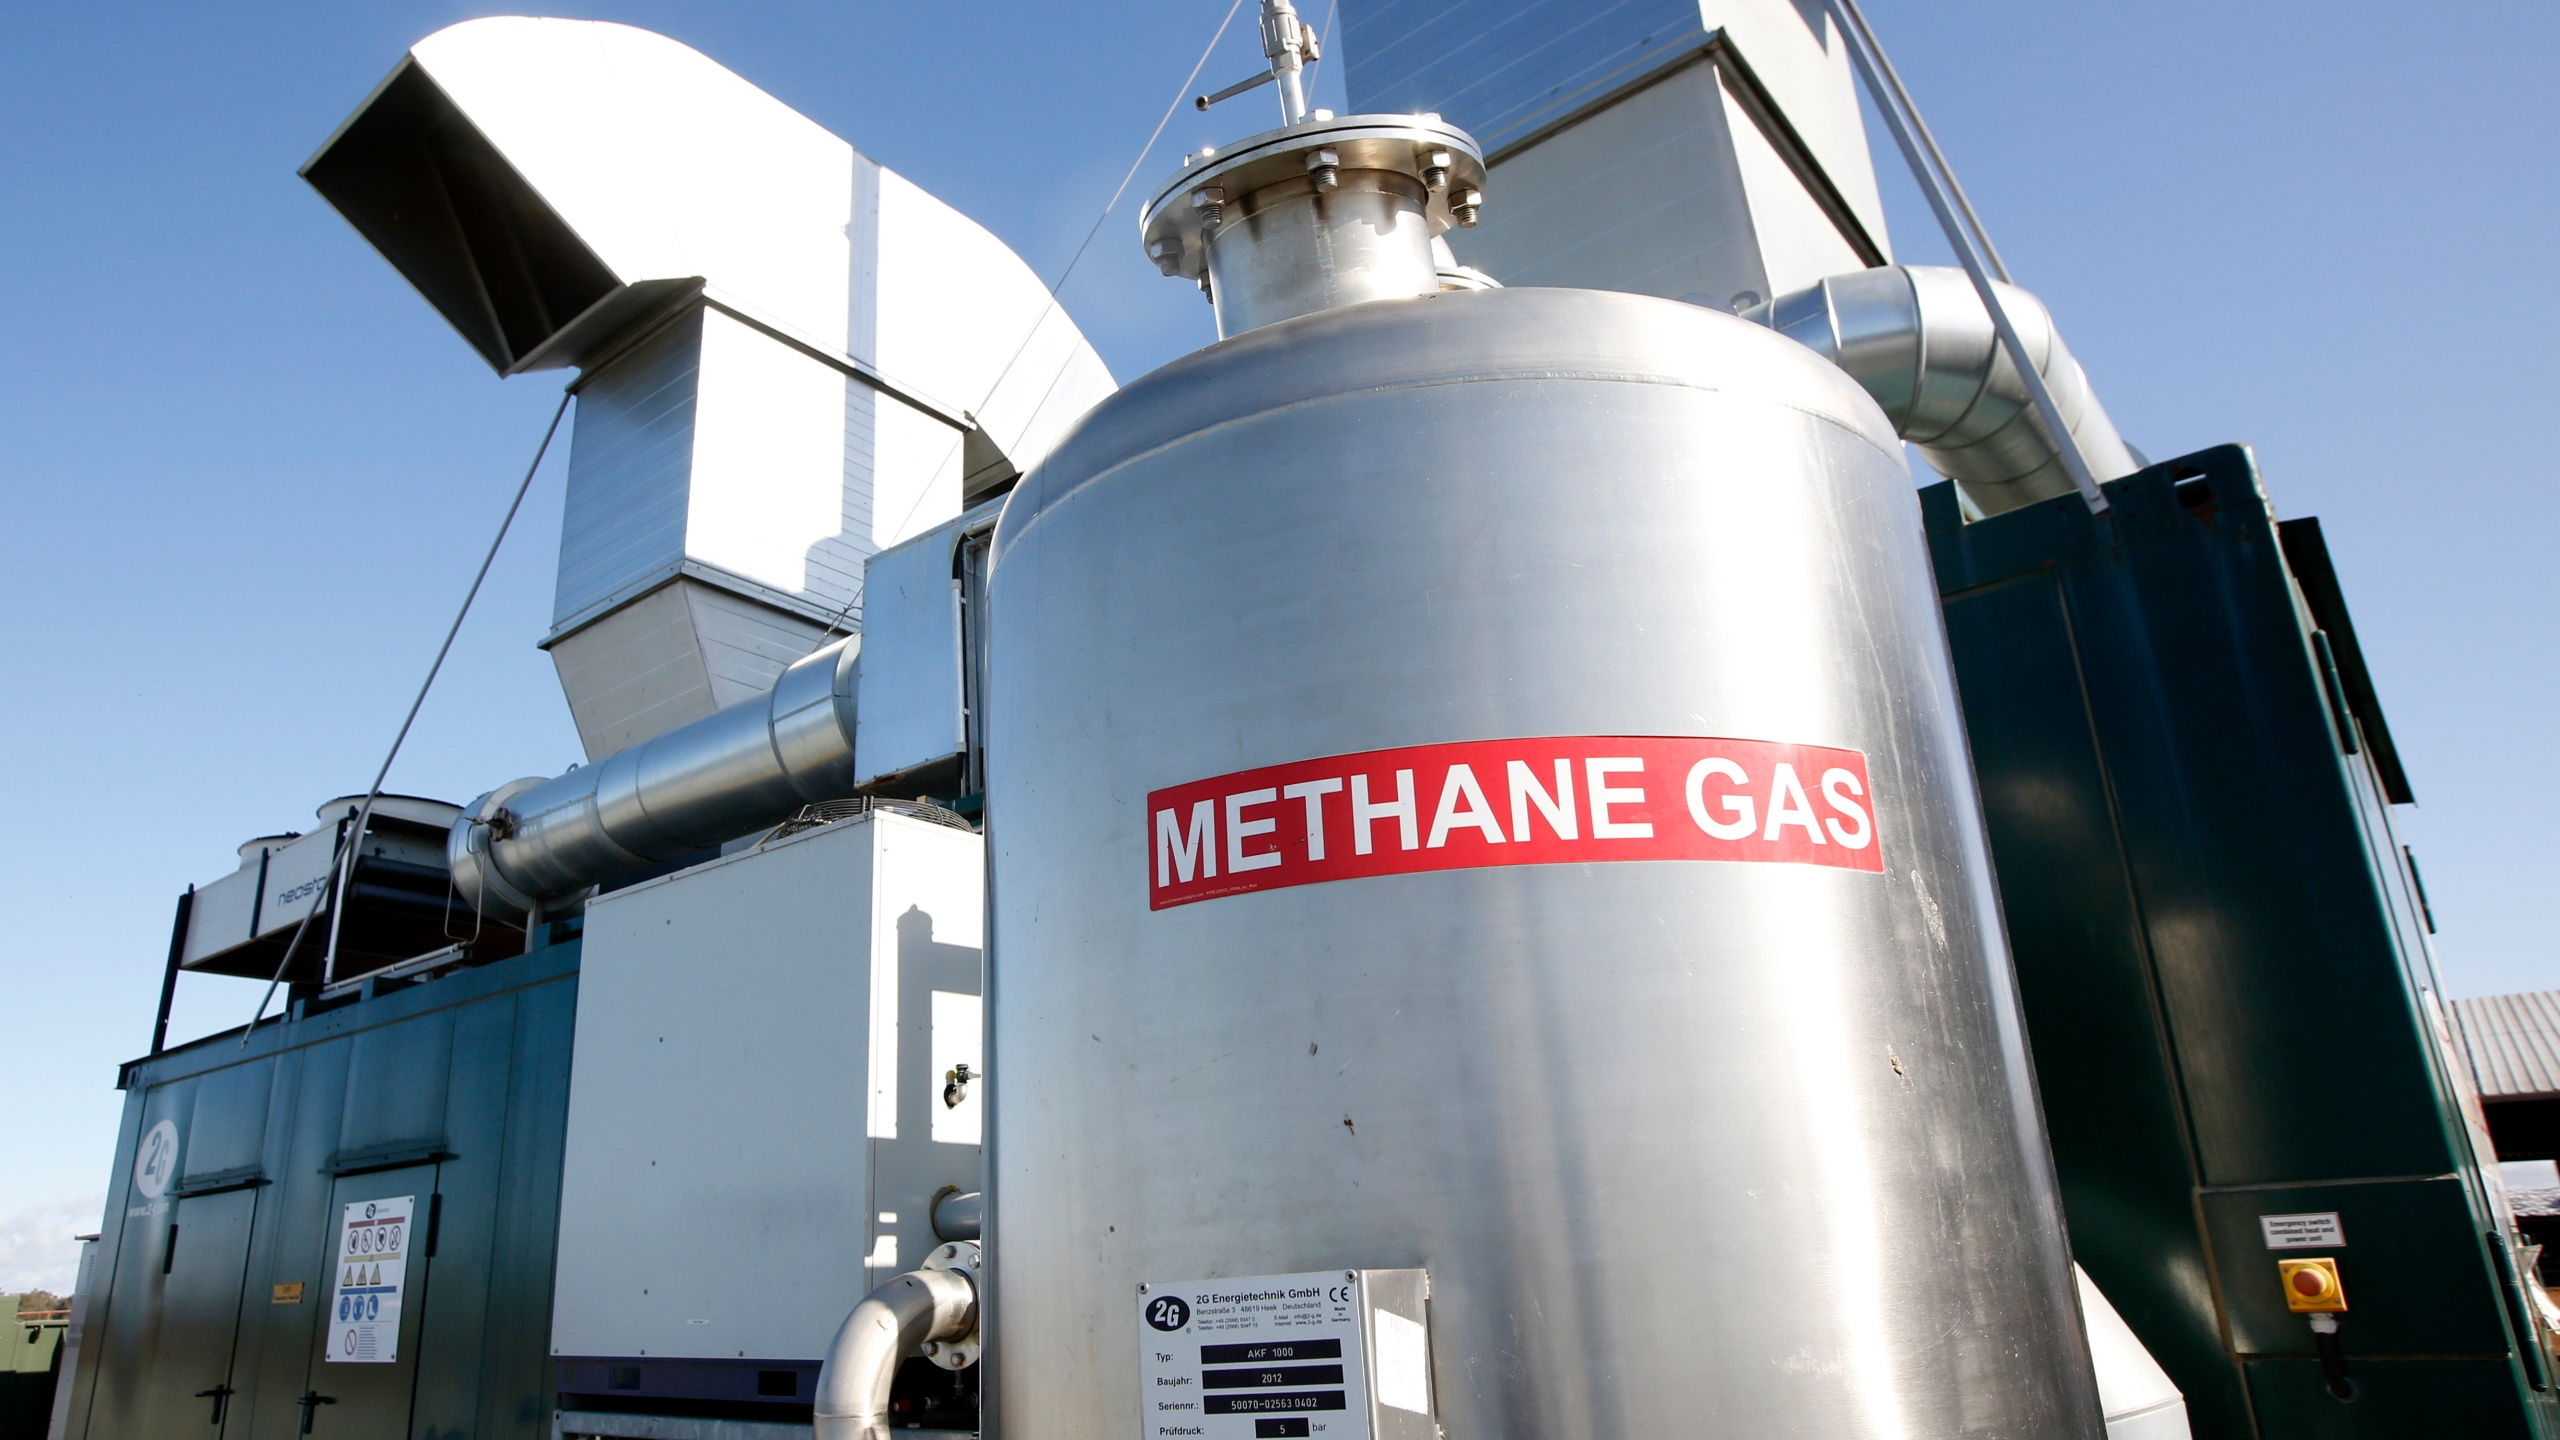 Methane Gas Cattle Emissions Photo by Rich Pedroncelli, AP Photo_249109